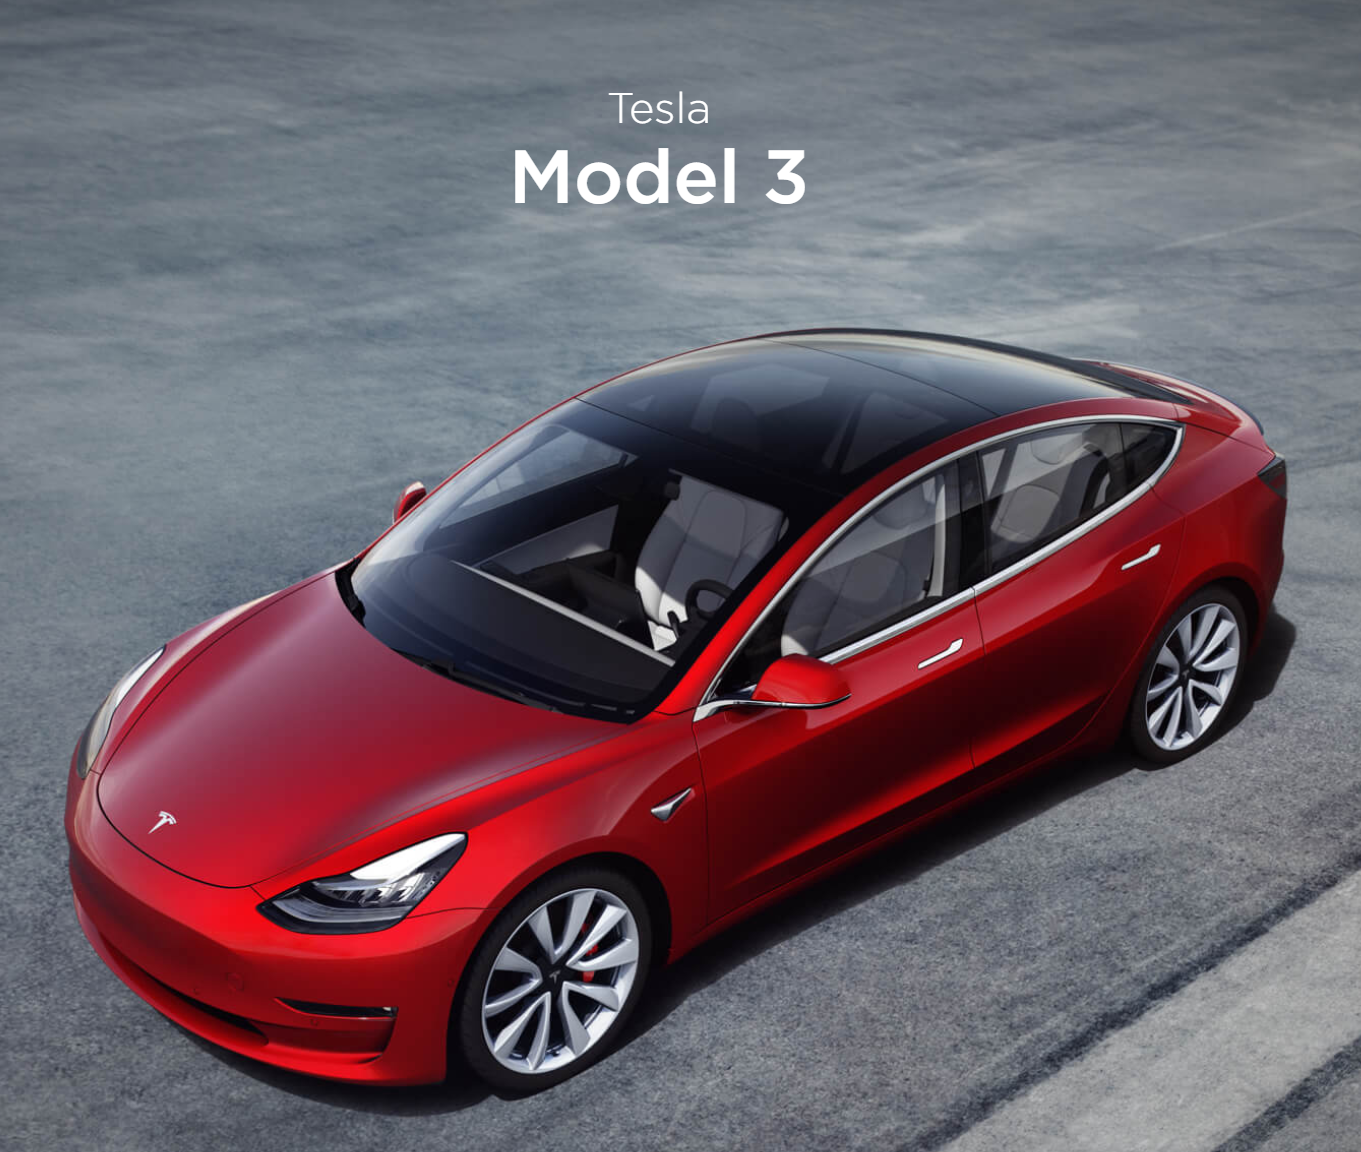 Tesla: New Tesla $35,000 Model 3 Revolutionizes The Market